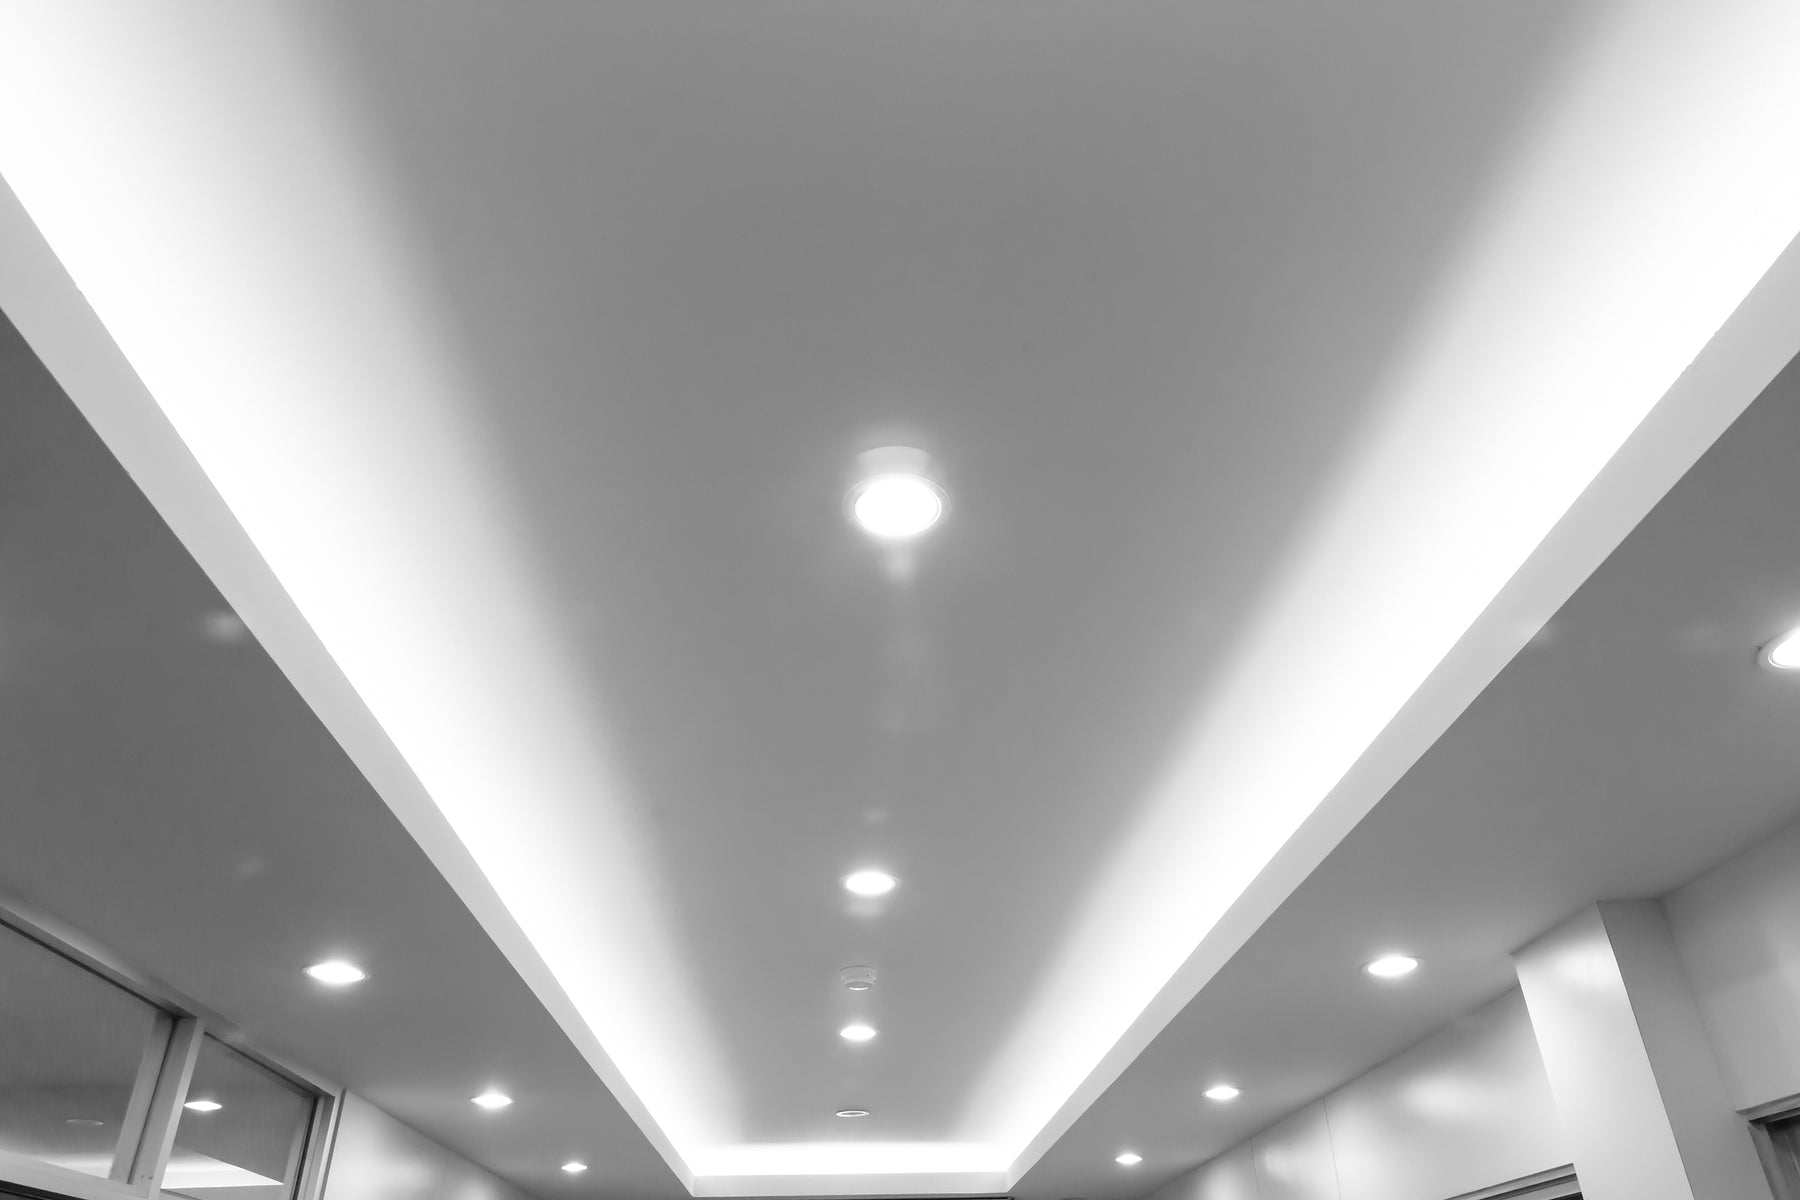 Choosing Downlights, Slims, and Recessed Cans